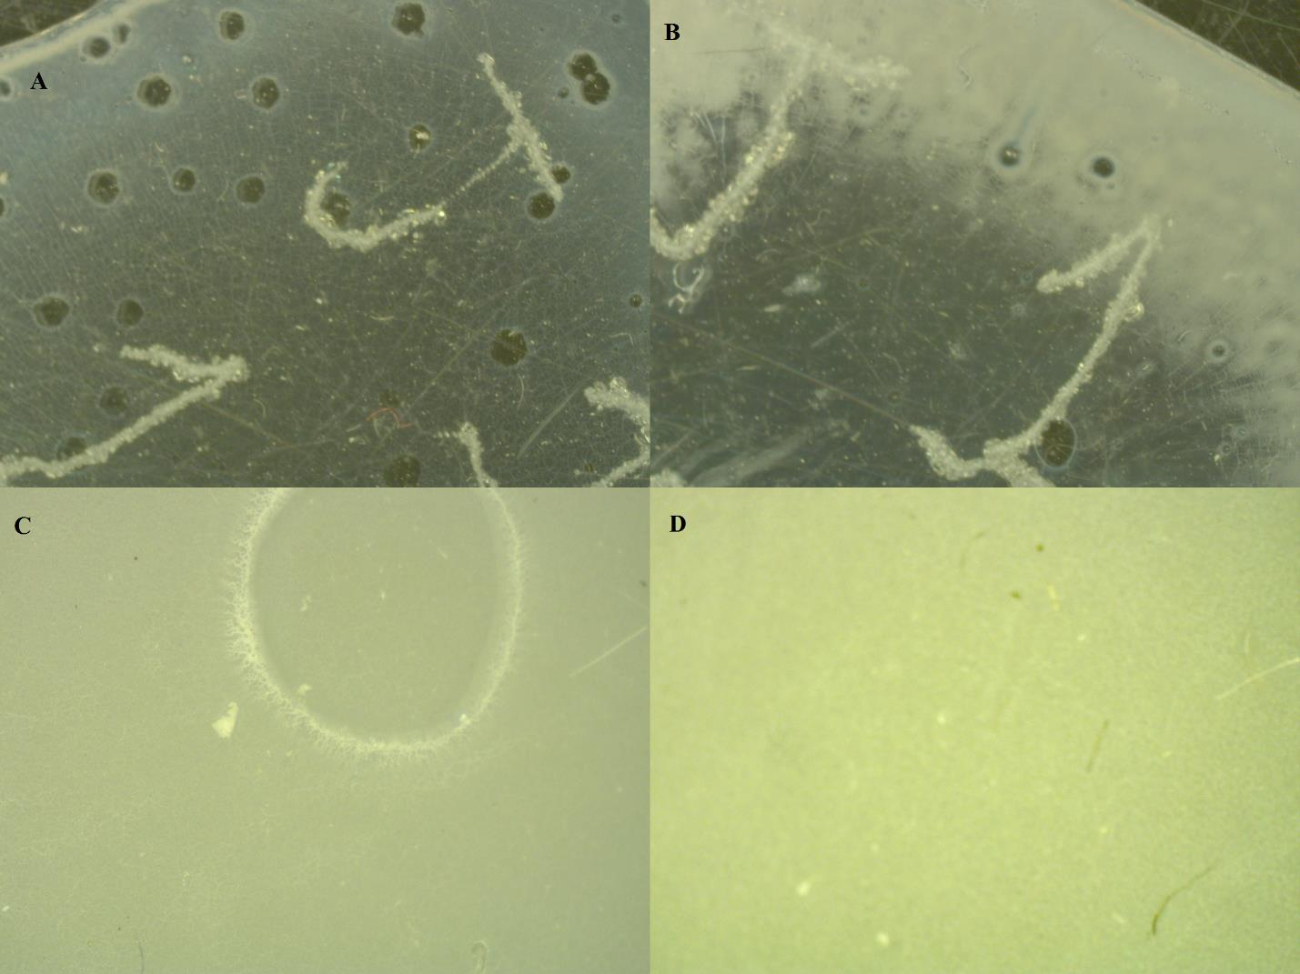 Figure 16: comparison of images taken from a stereo microscope of samples dried at 70°C (A), 120°C (B), 150°C (C), and 200°C (D)